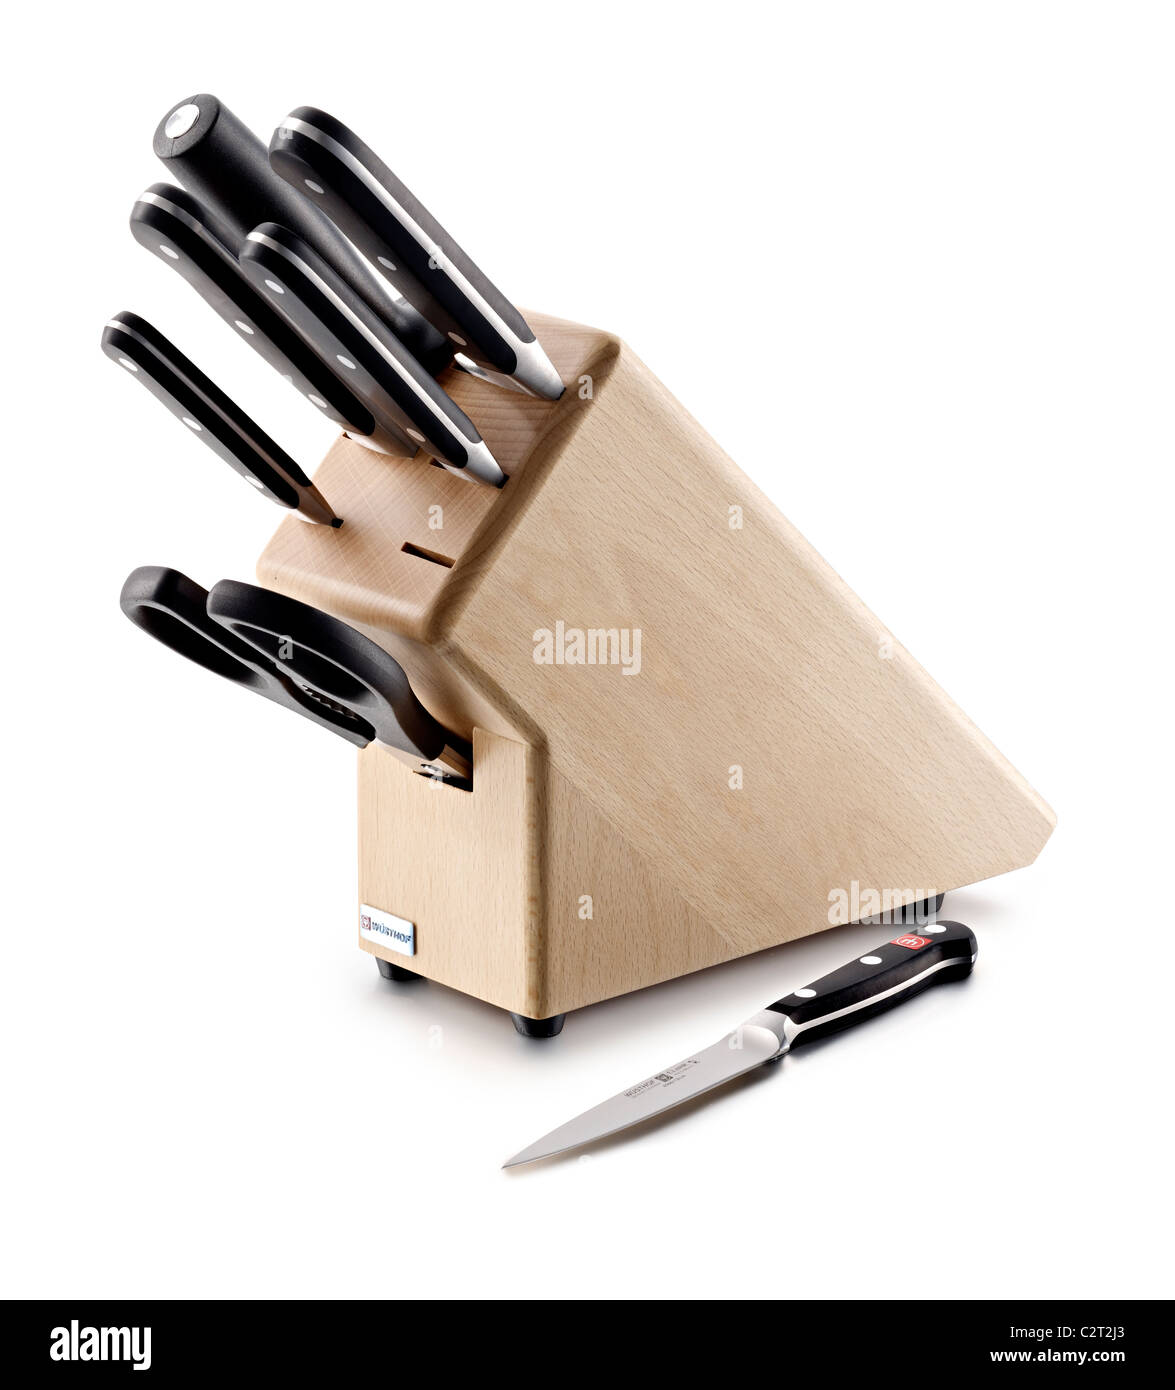 wooden knife block and knives - Stock Image